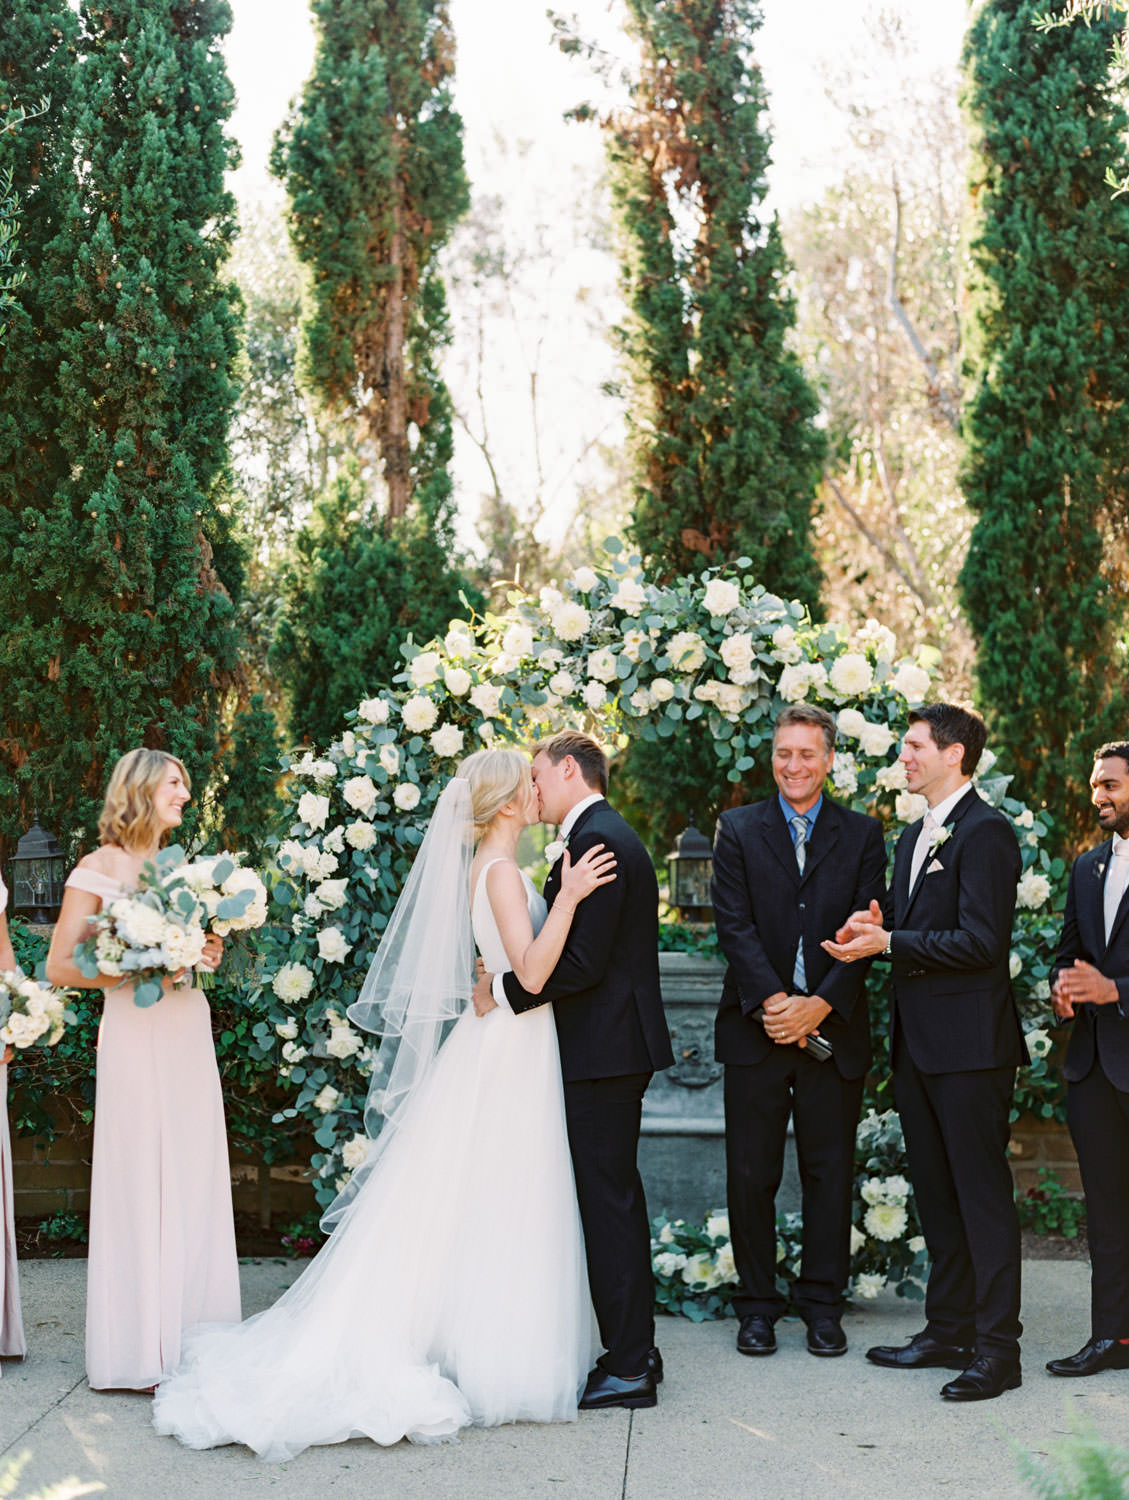 Bride and groom first kiss. Circular ceremony arch with silver dollar eucalyptus, white dahlias and roses. Estancia La Jolla wedding shot on film by Cavin Elizabeth Photography